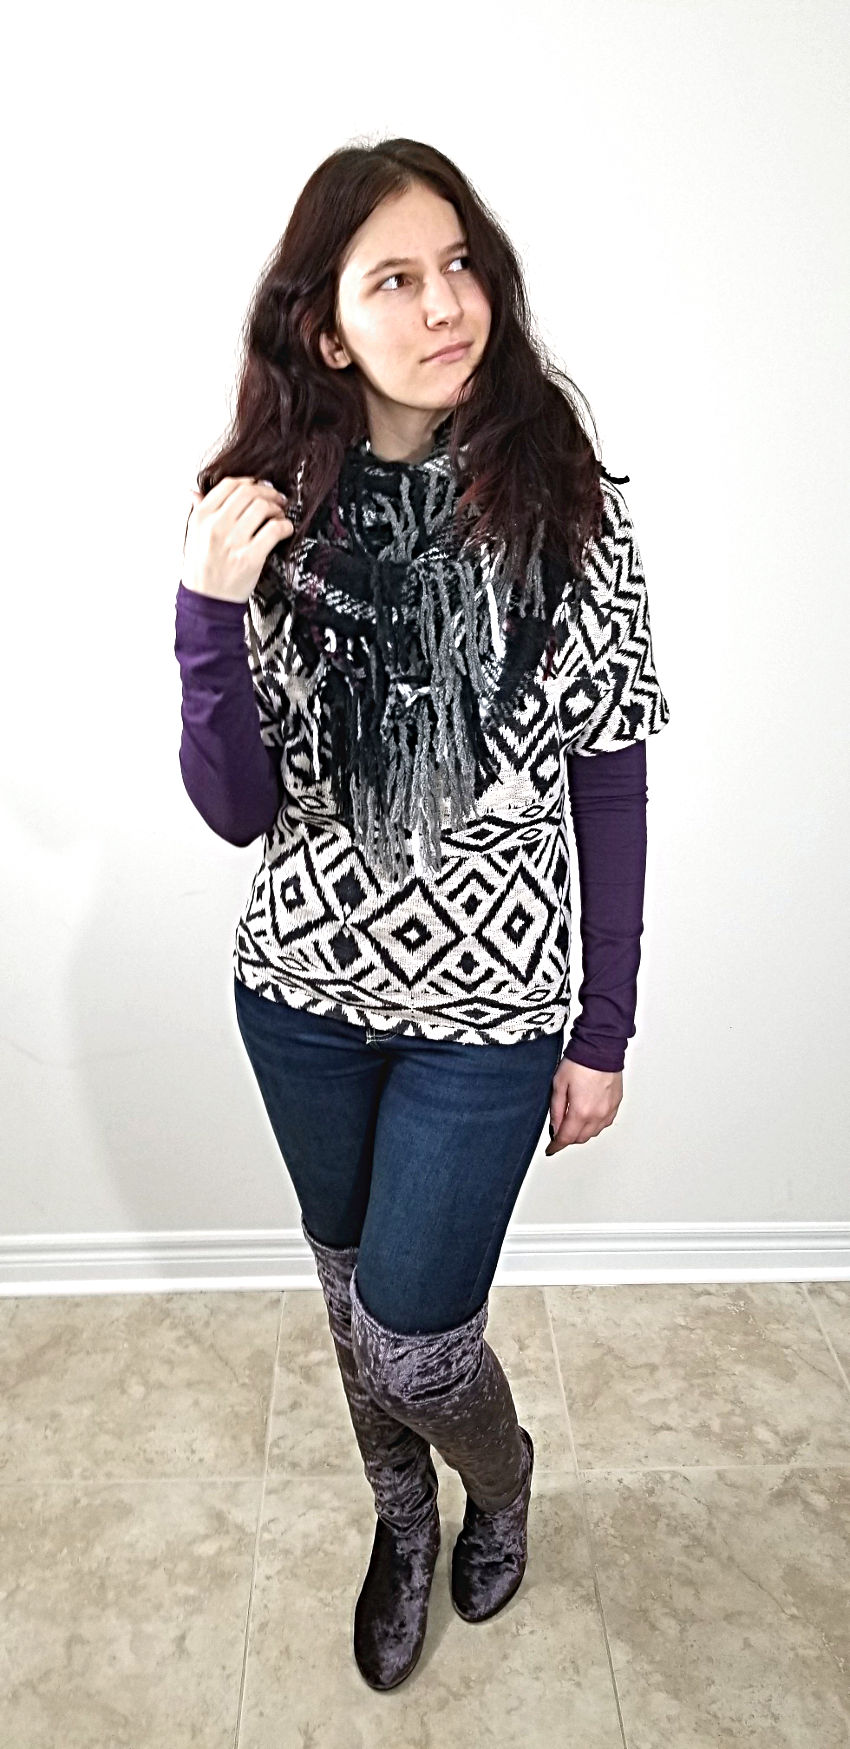 Polar Bear Style Geometric Top Layered Plaid Scarves Purple Velvet Thigh-High Boots